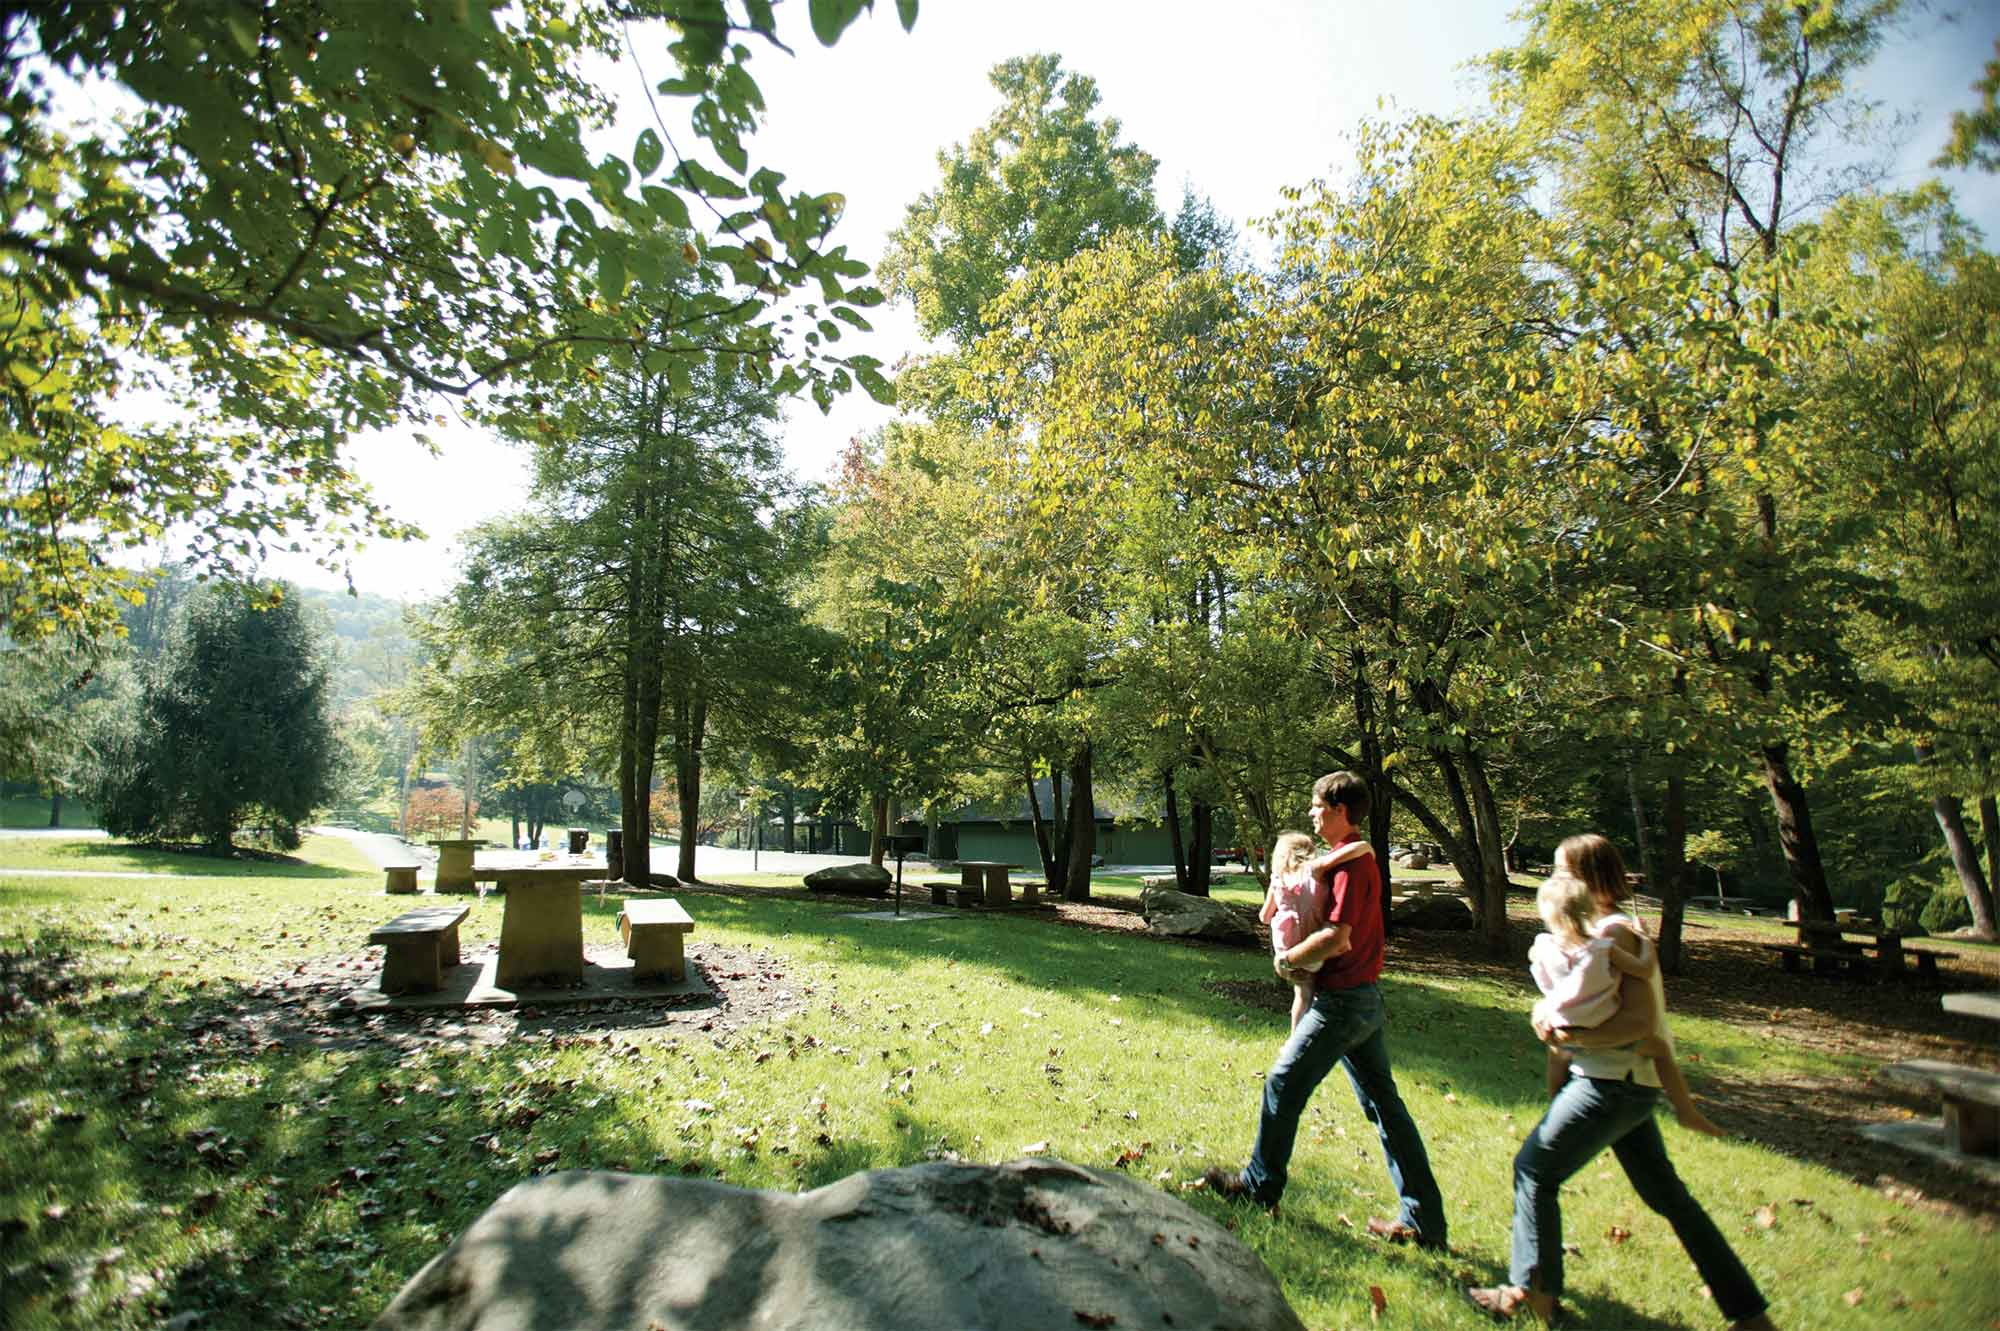 Public parks in gatlinburg pigeon forge cabins of the for Www cabins of the smoky mountains com